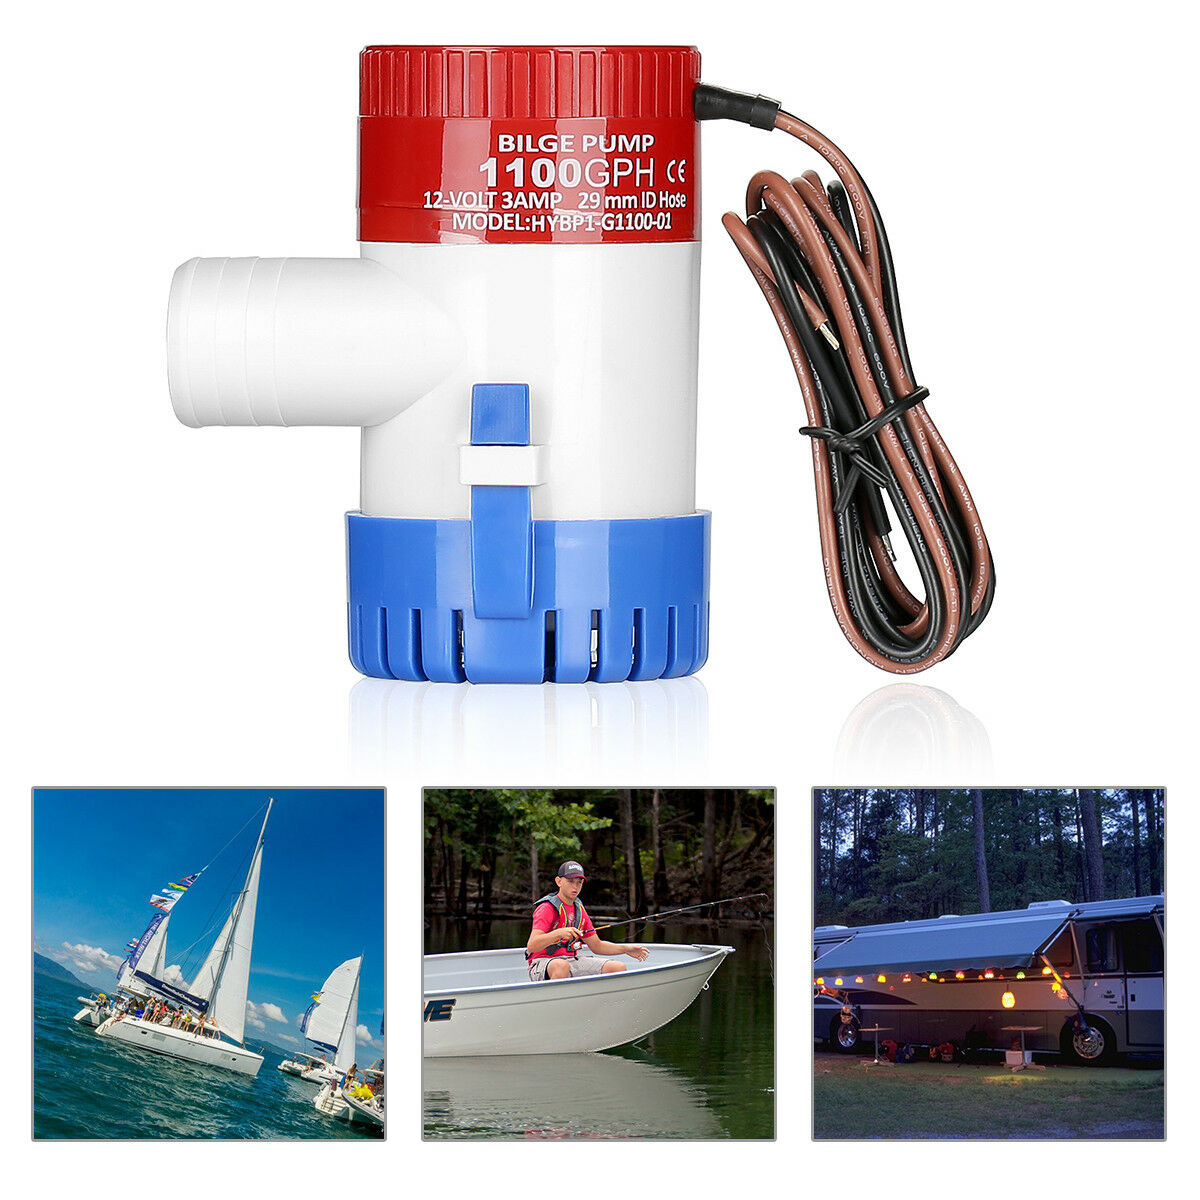 Professional 3.0A <font><b>1100</b></font> <font><b>GPH</b></font> 12V Submersible Boat Electric <font><b>Bilge</b></font> <font><b>Pump</b></font> 1-1/8 Inch Outlet For Boat <font><b>Bilge</b></font> <font><b>Pump</b></font> image